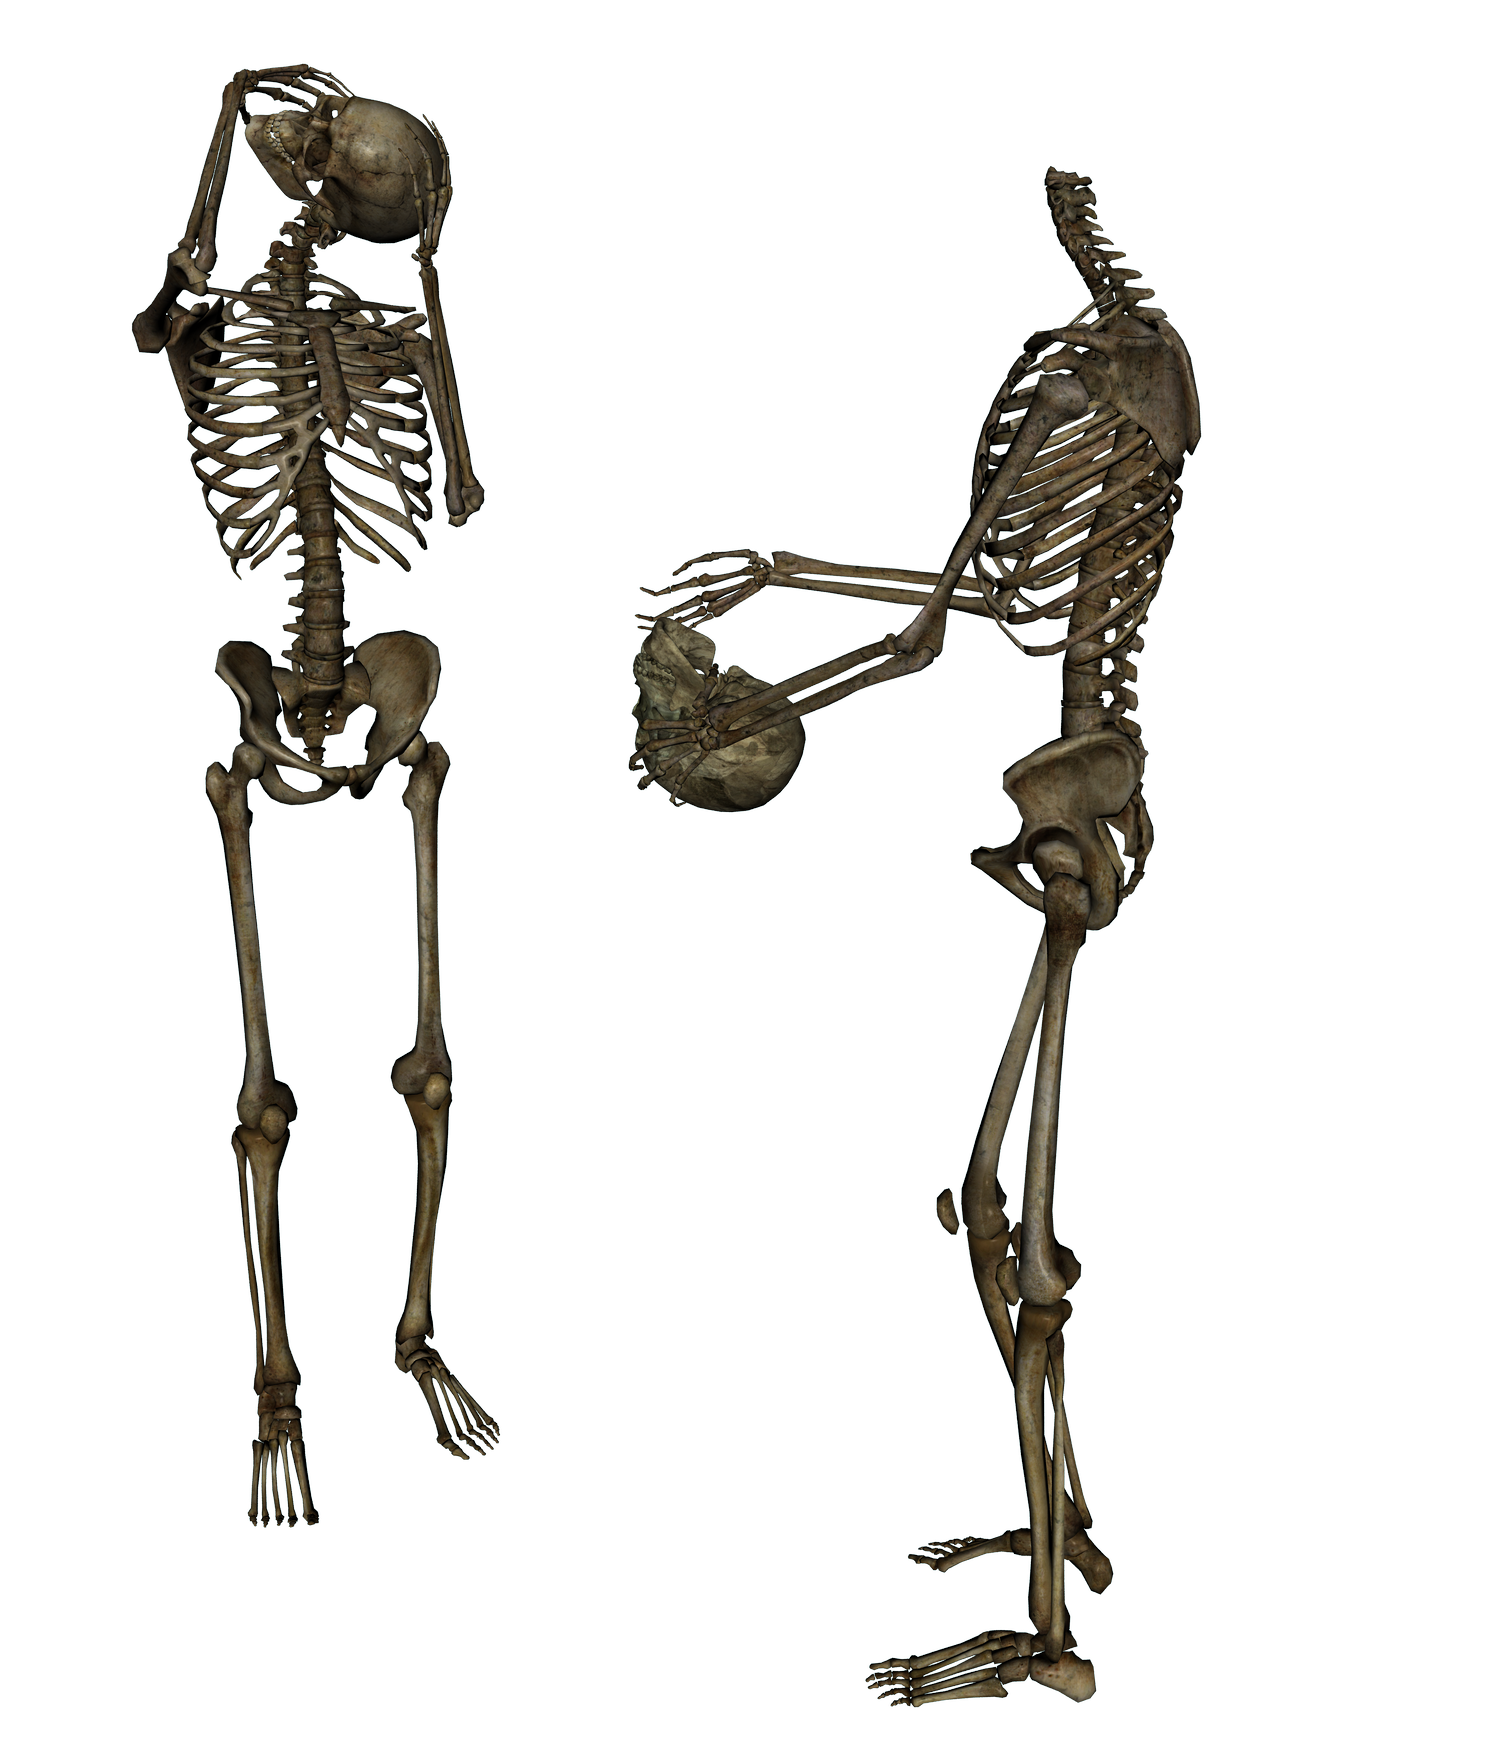 Skeleton Head Trade Png image #43855